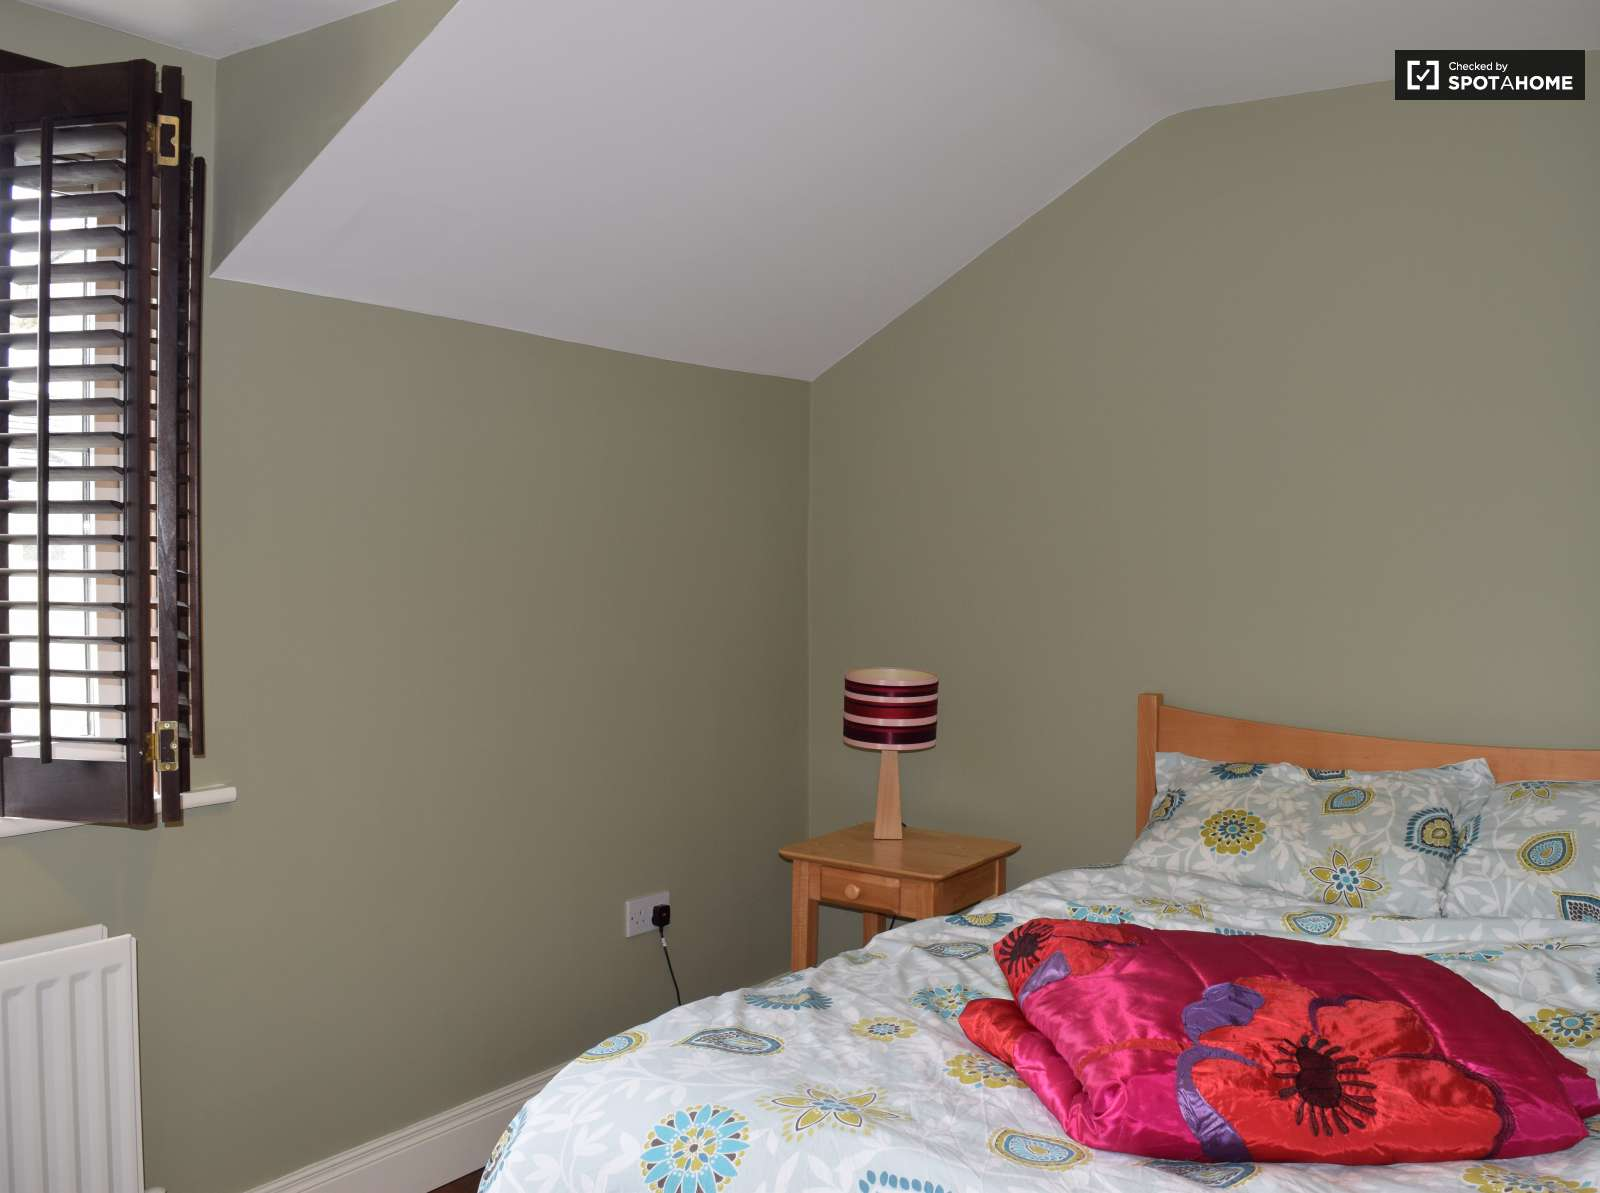 In Bedroom Bedroom For Workers In A Large House In Tyrrelstown Dublin